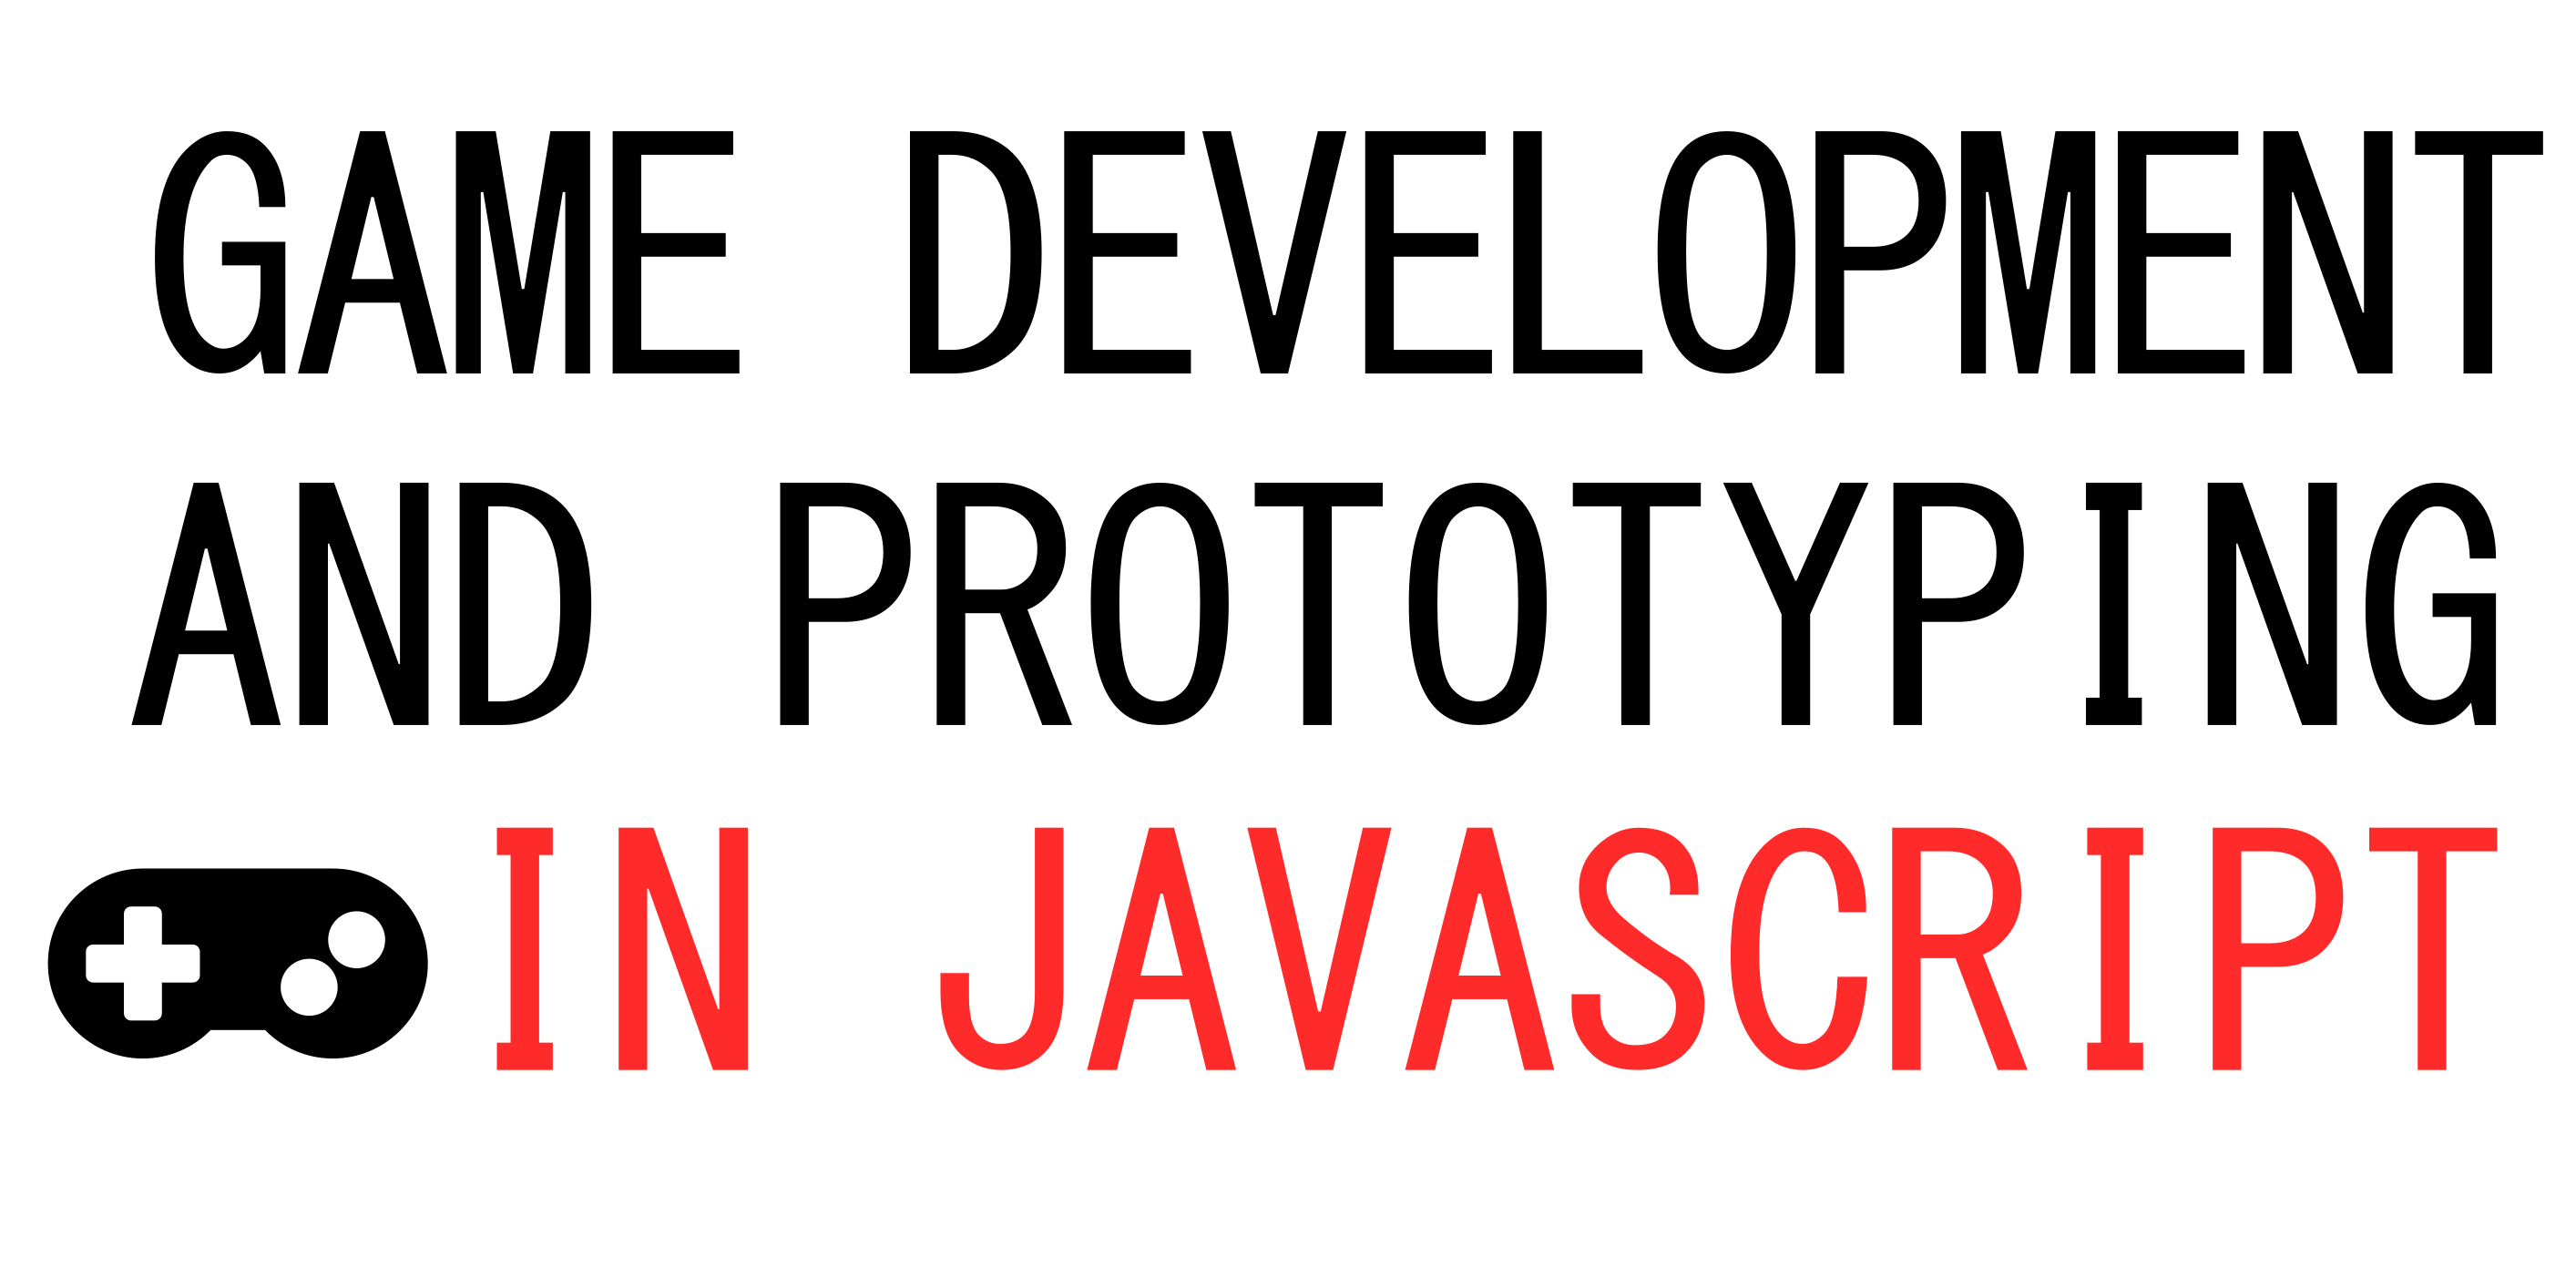 Game Development And Prototyping In JavaScript